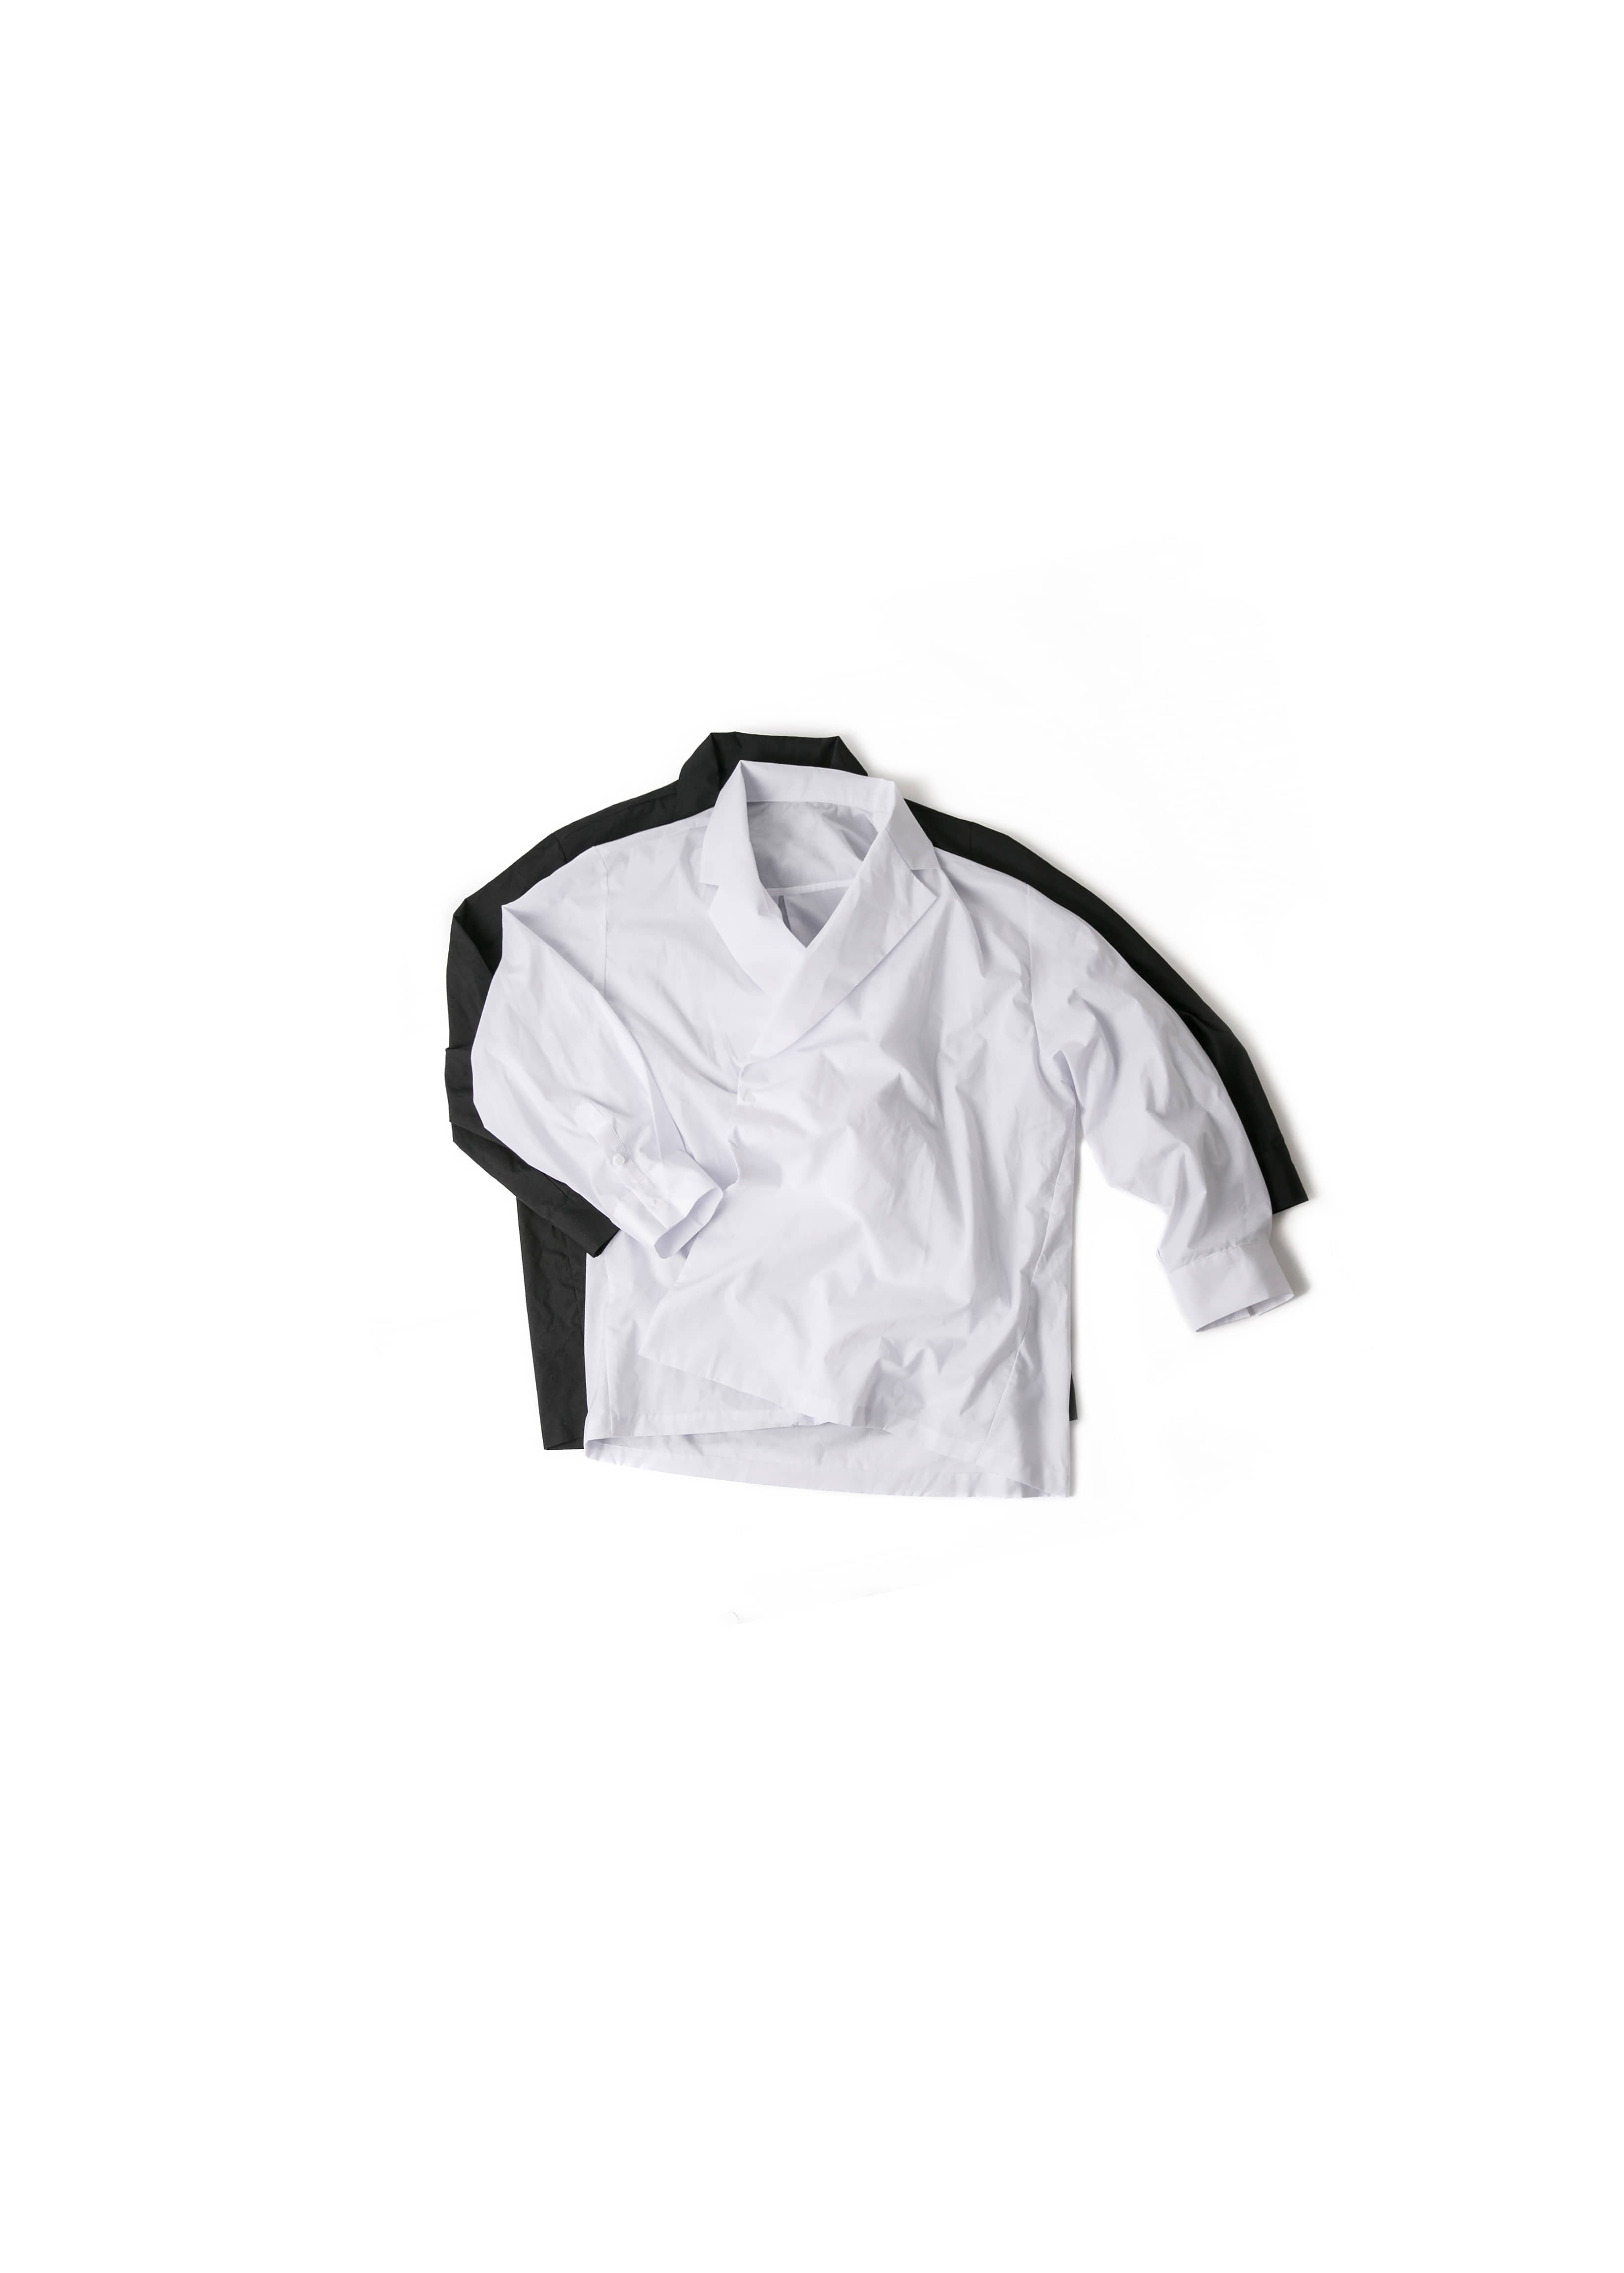 [U] Double Collar Shirts - 2color [ RE ]